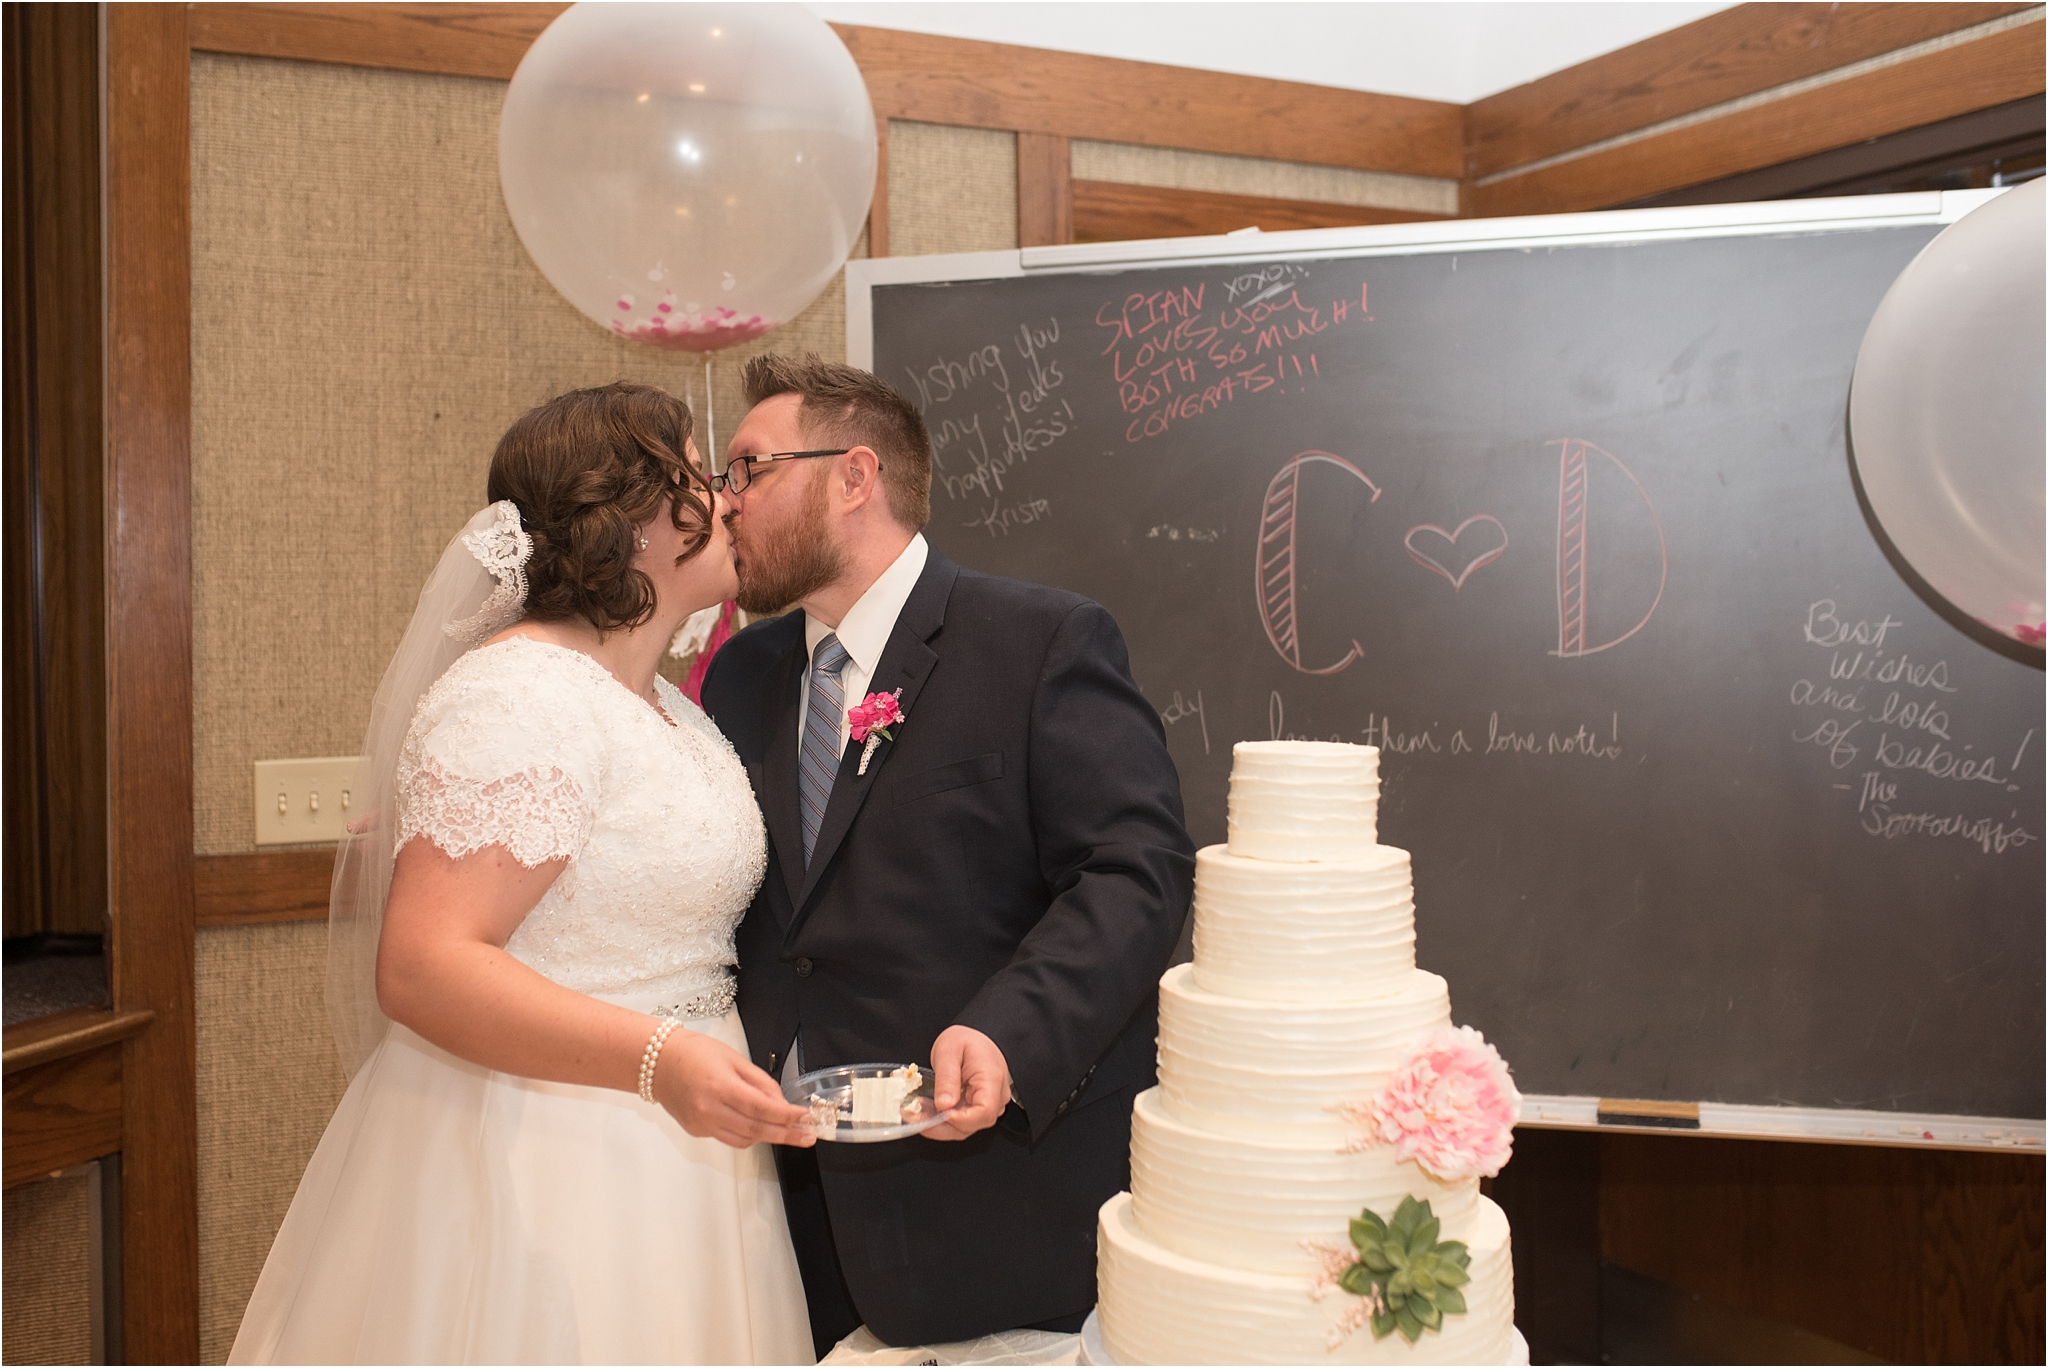 kayla kitts photography - albuquerque wedding photographer - hairpins and scissors - a cake odyssey - new mexico wedding photographer_0140.jpg